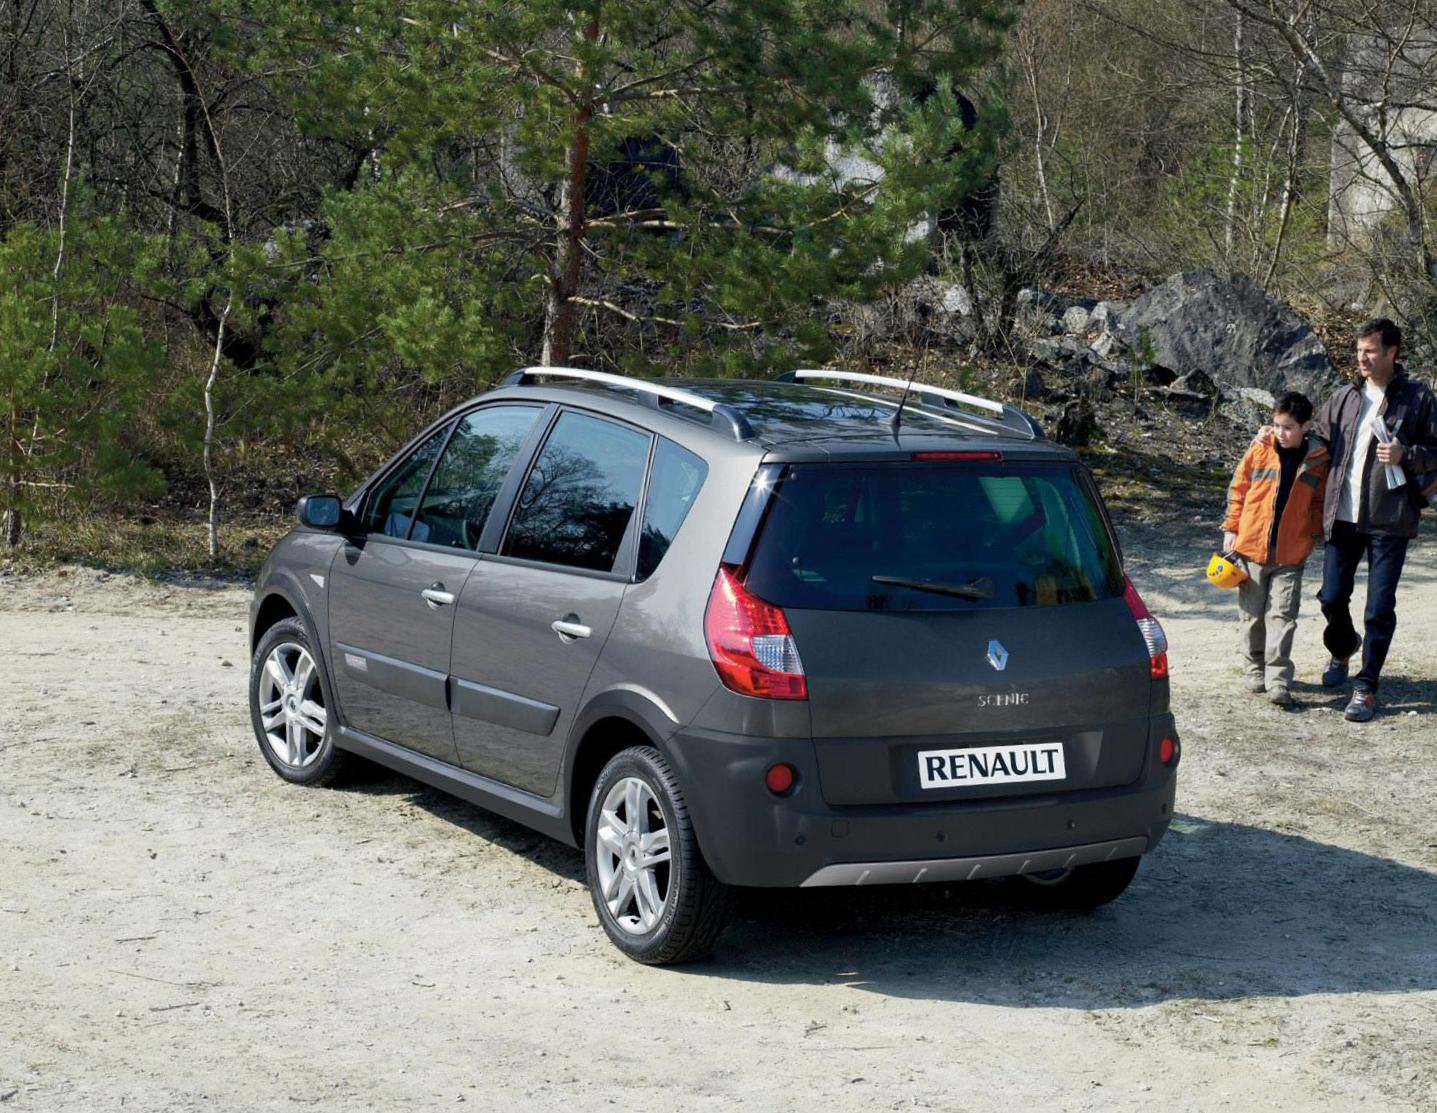 Scenic Conquest Renault reviews 2011